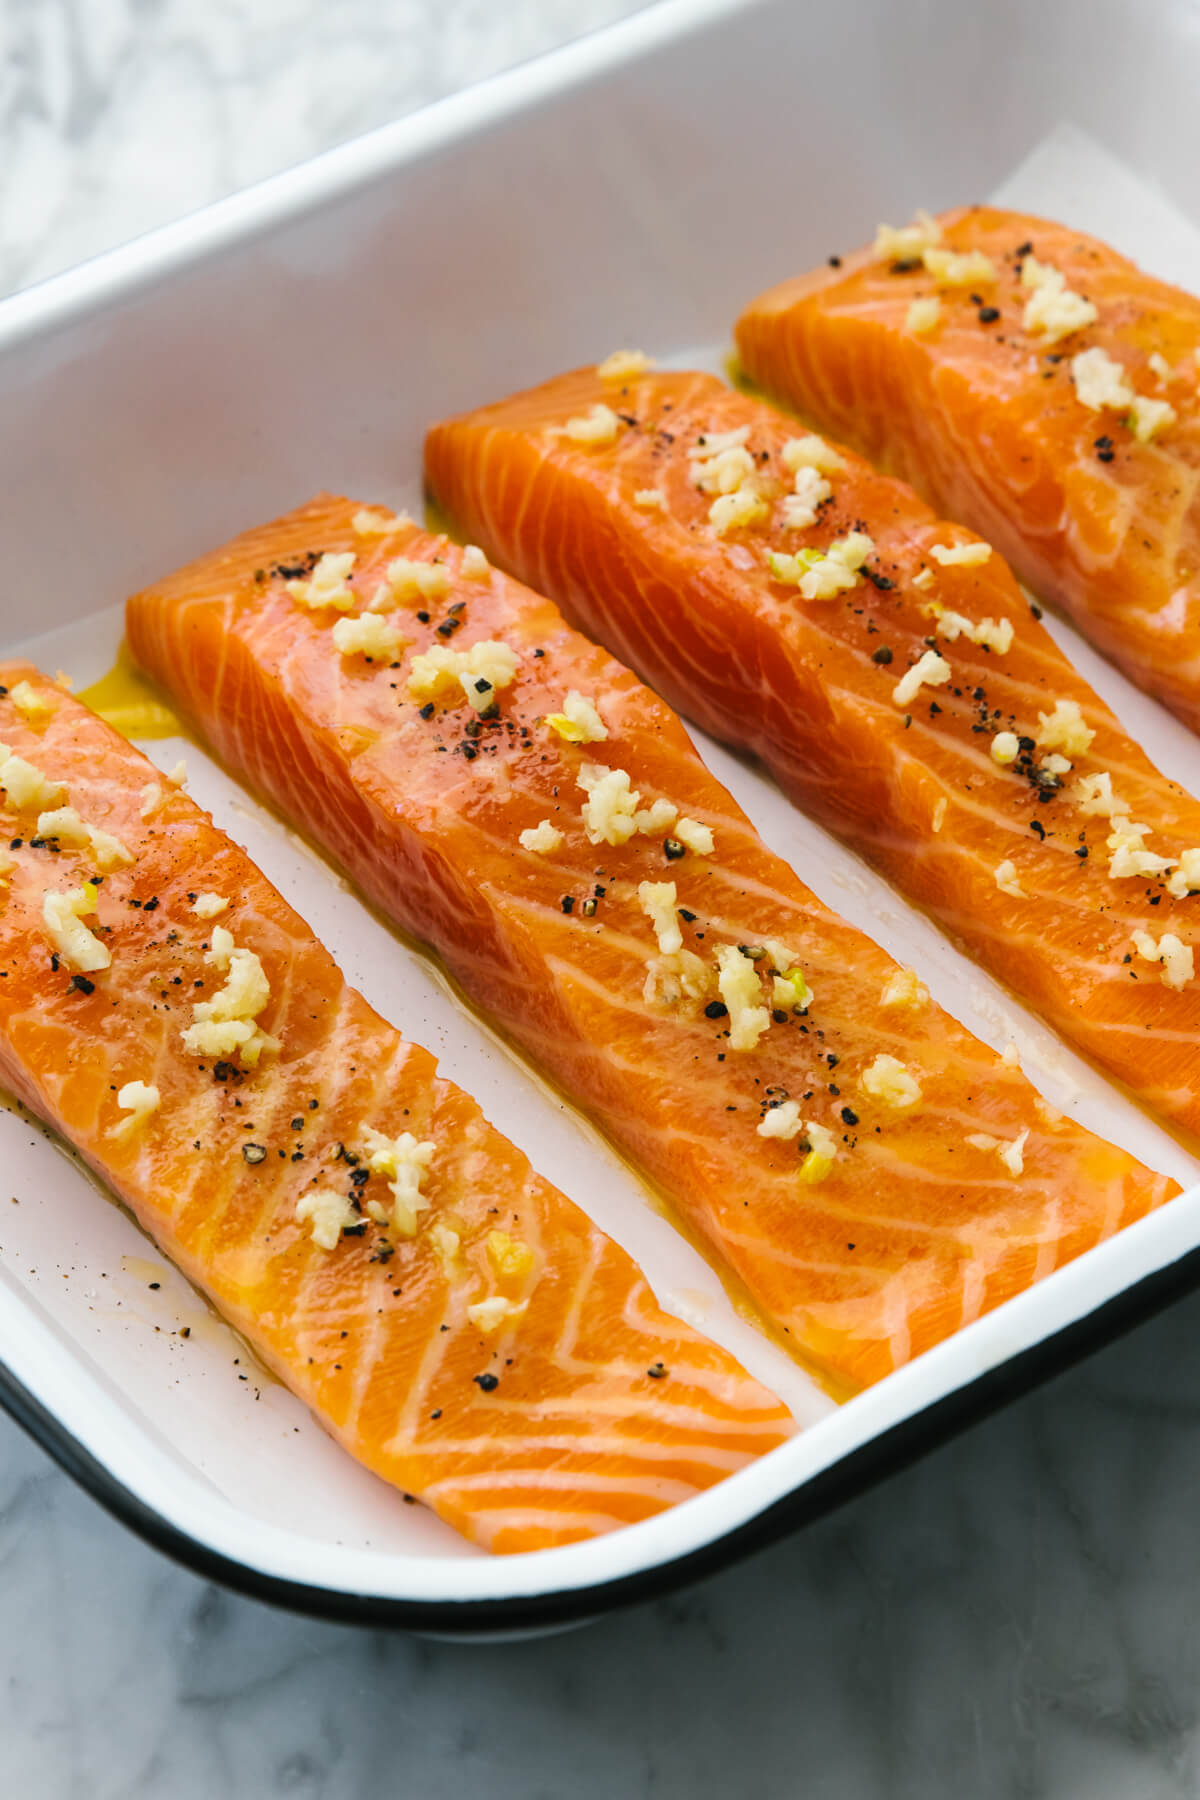 A pan with baked salmon and garlic butter sauce.